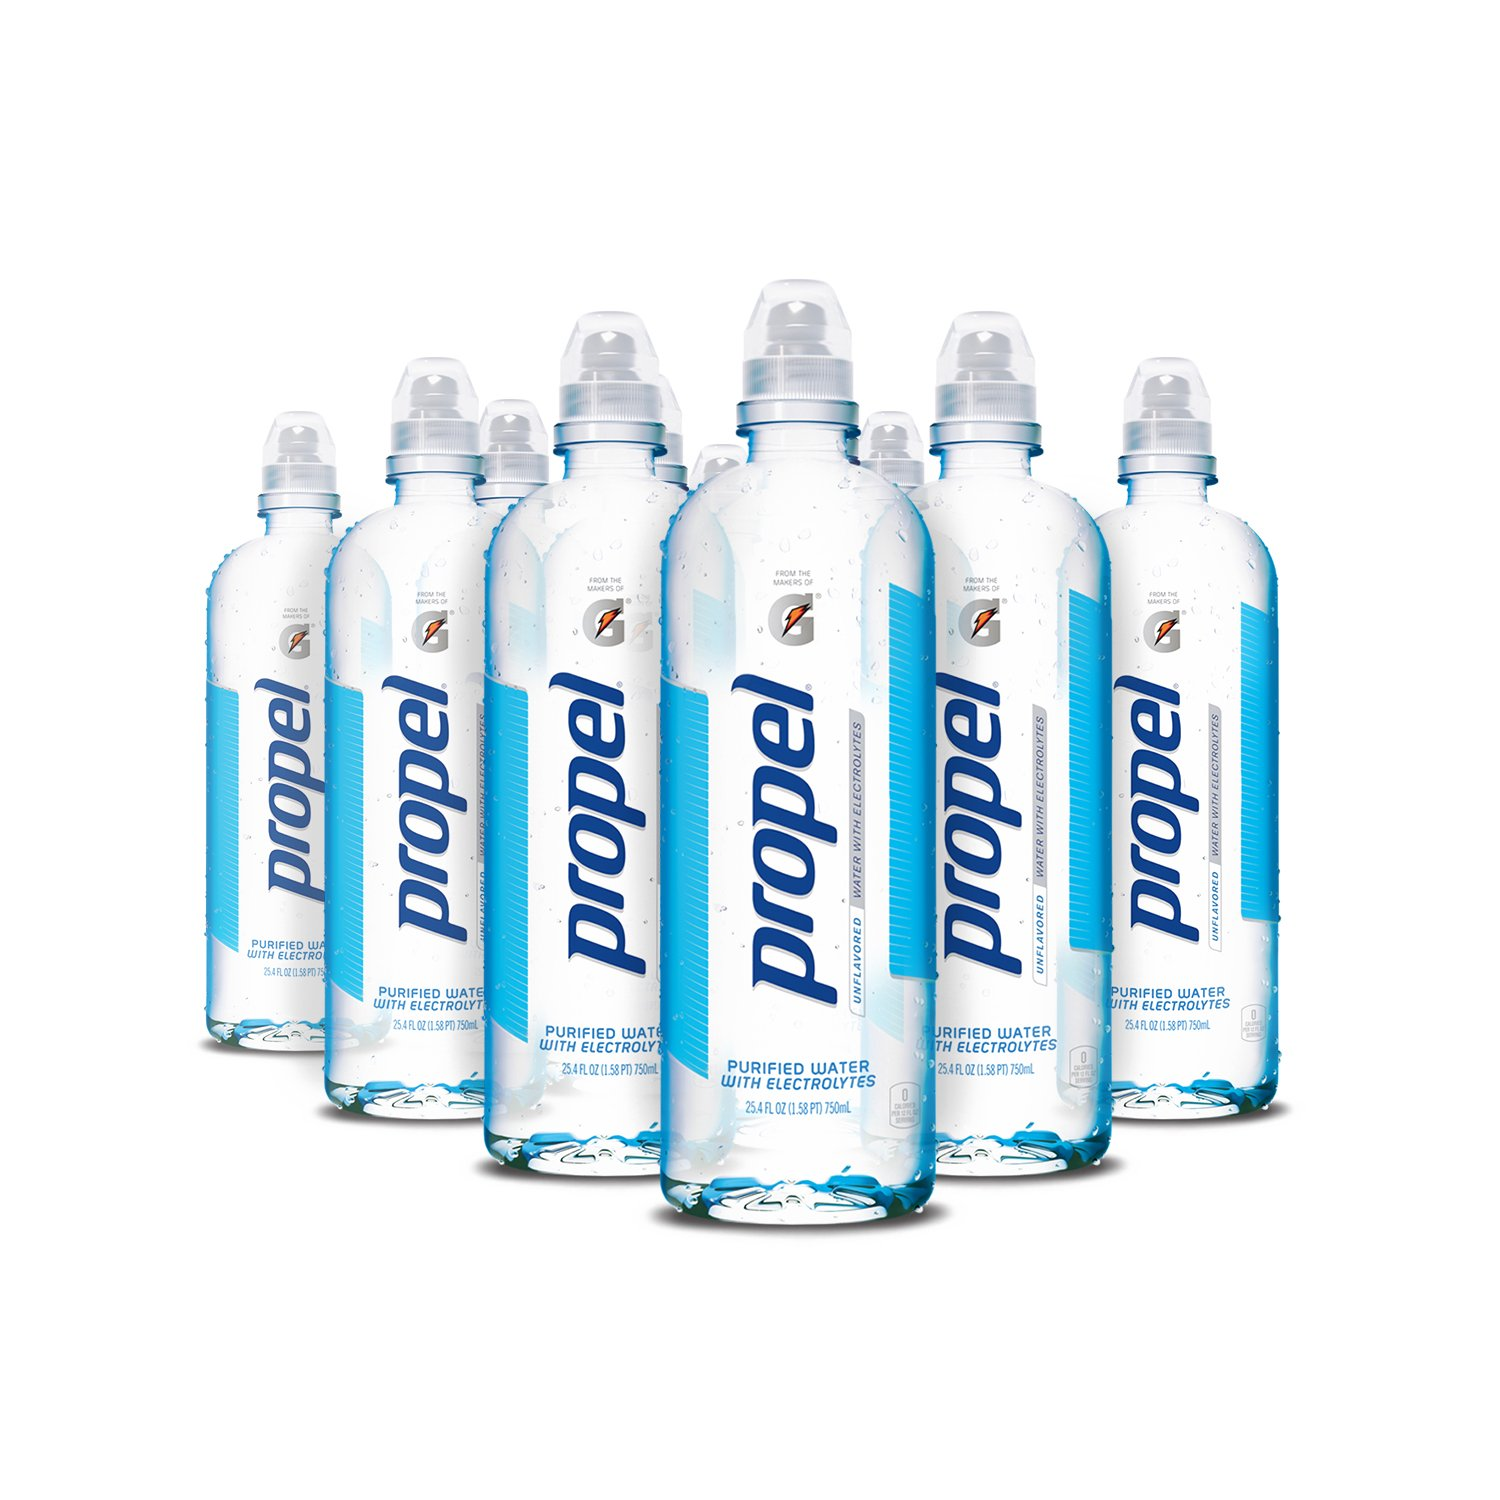 Propel Water Unflavored With Electrolytes and No Sugar, 750 ml Bottles (Pack of 12)